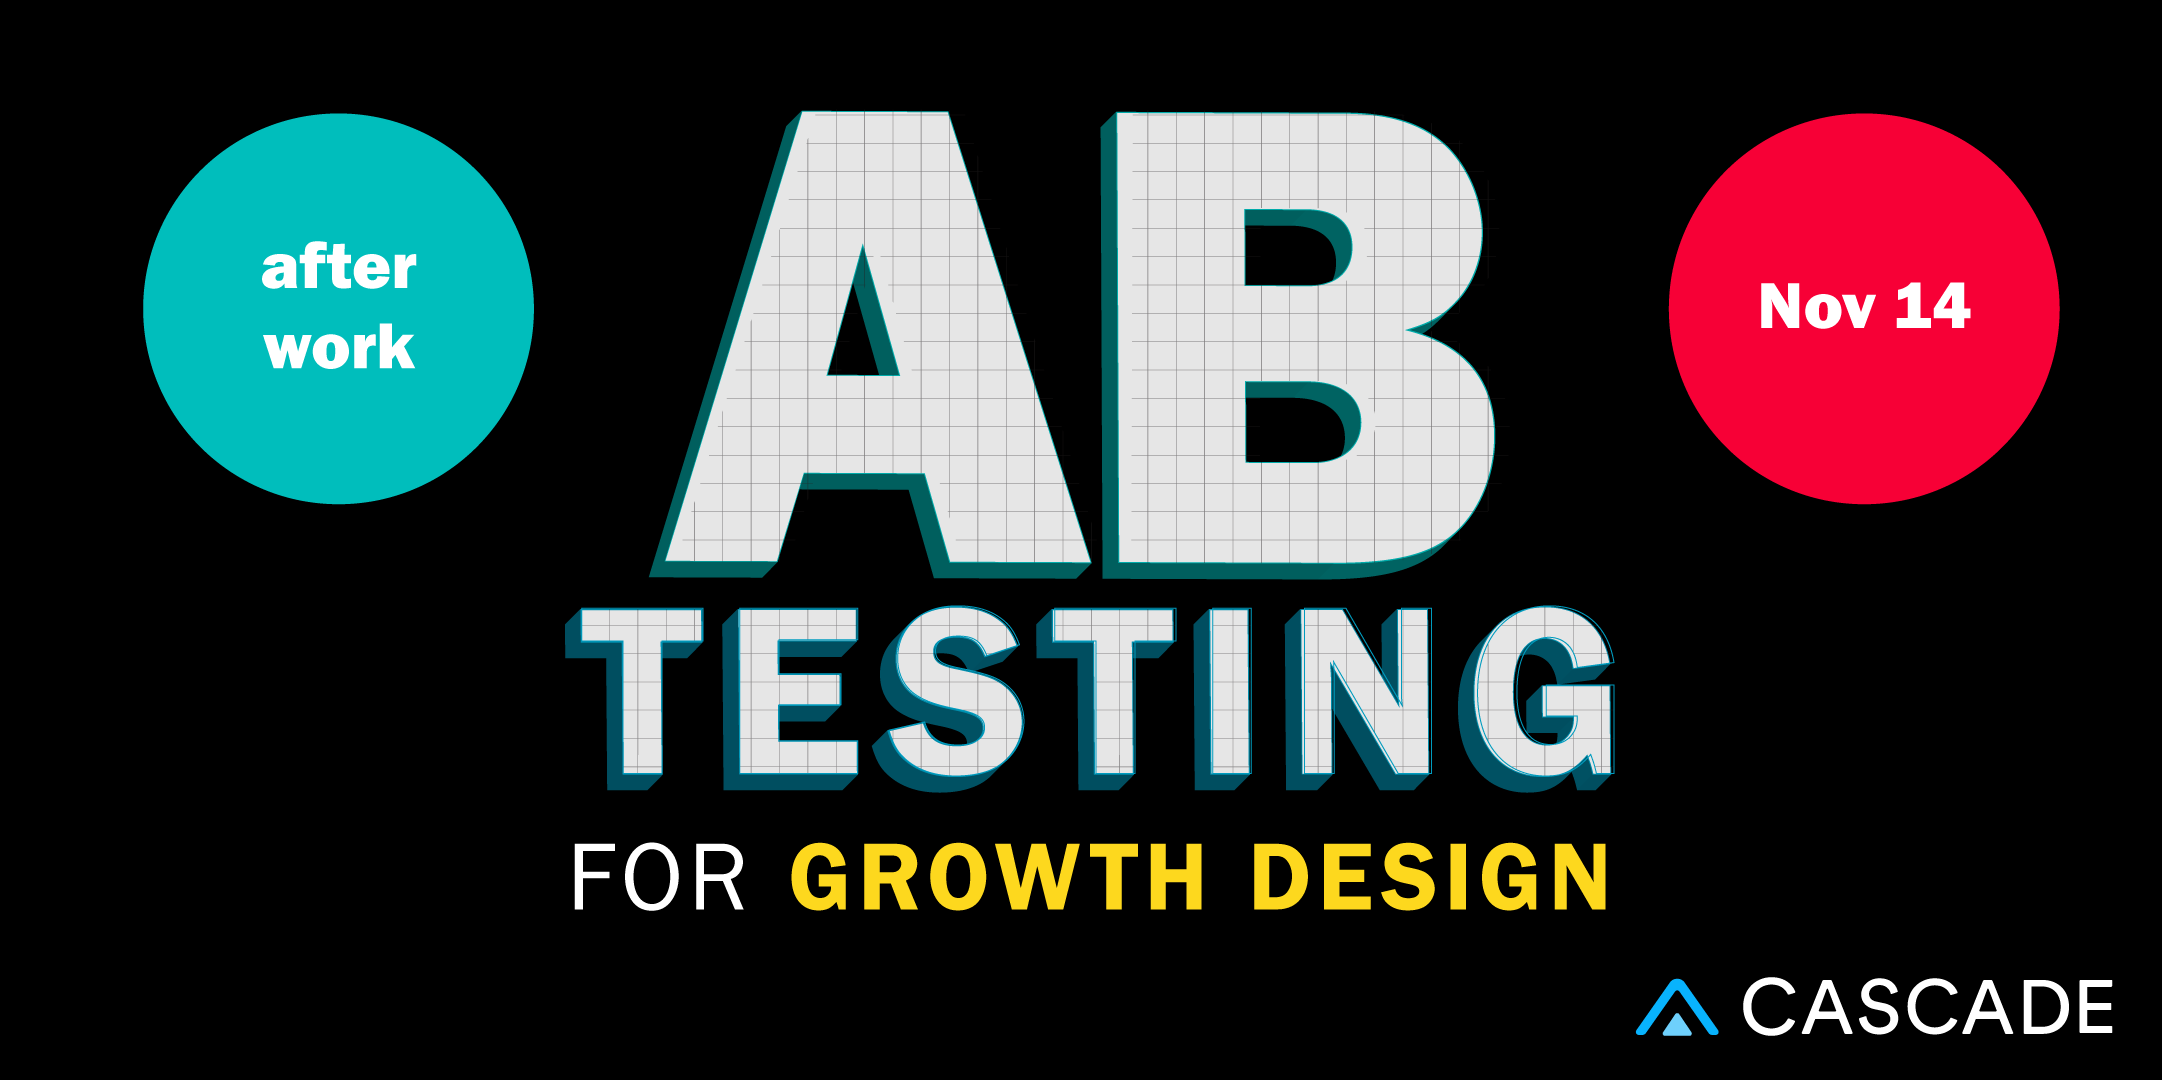 ab testing for growth design